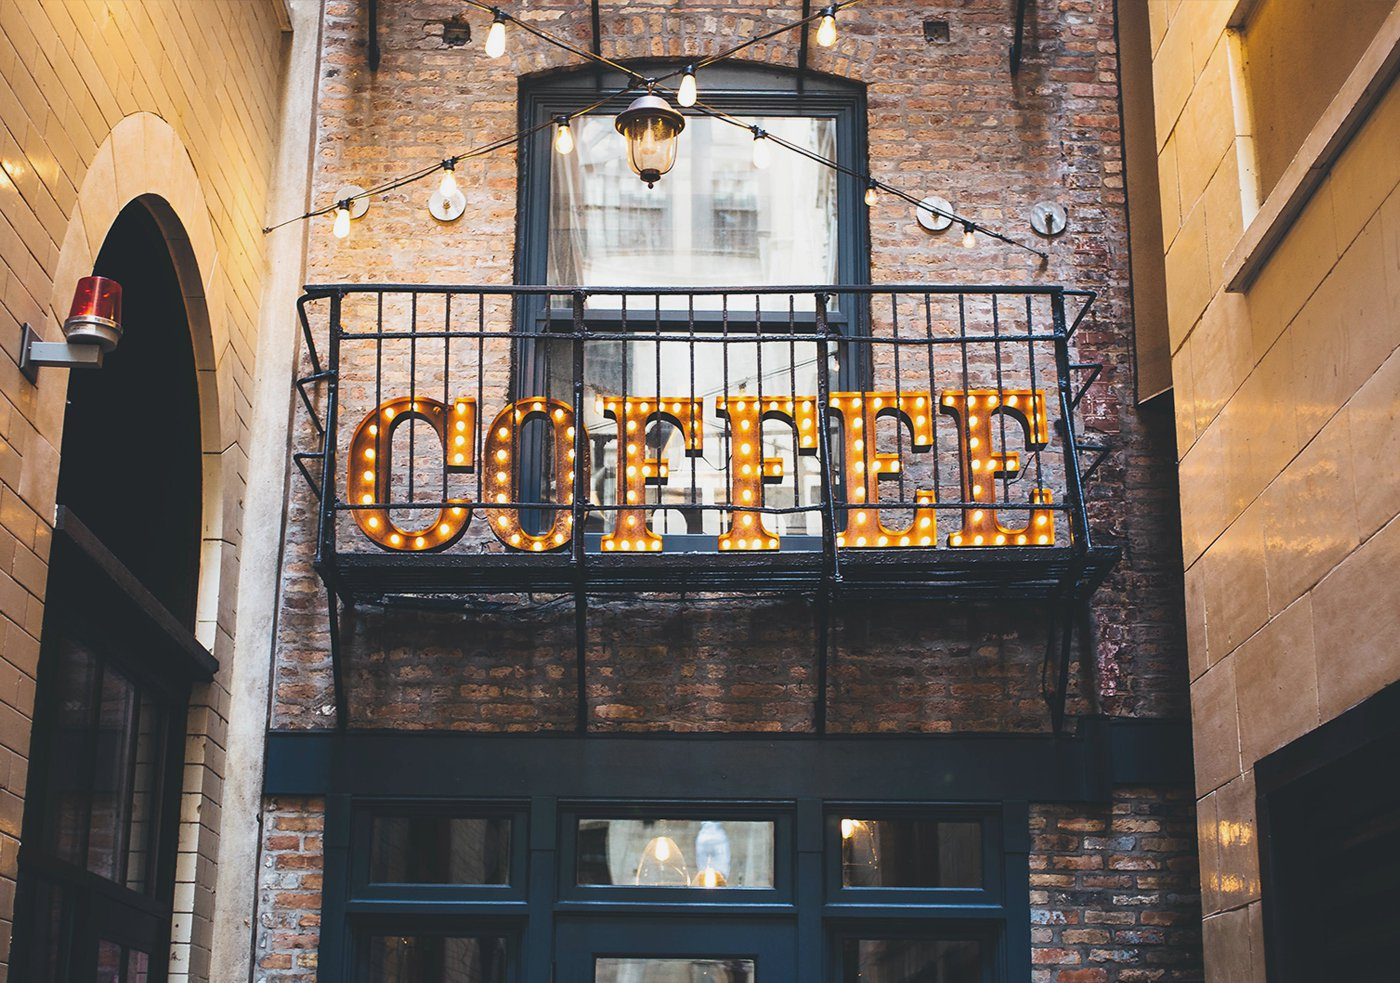 coffee shops are popular with coffee lovers